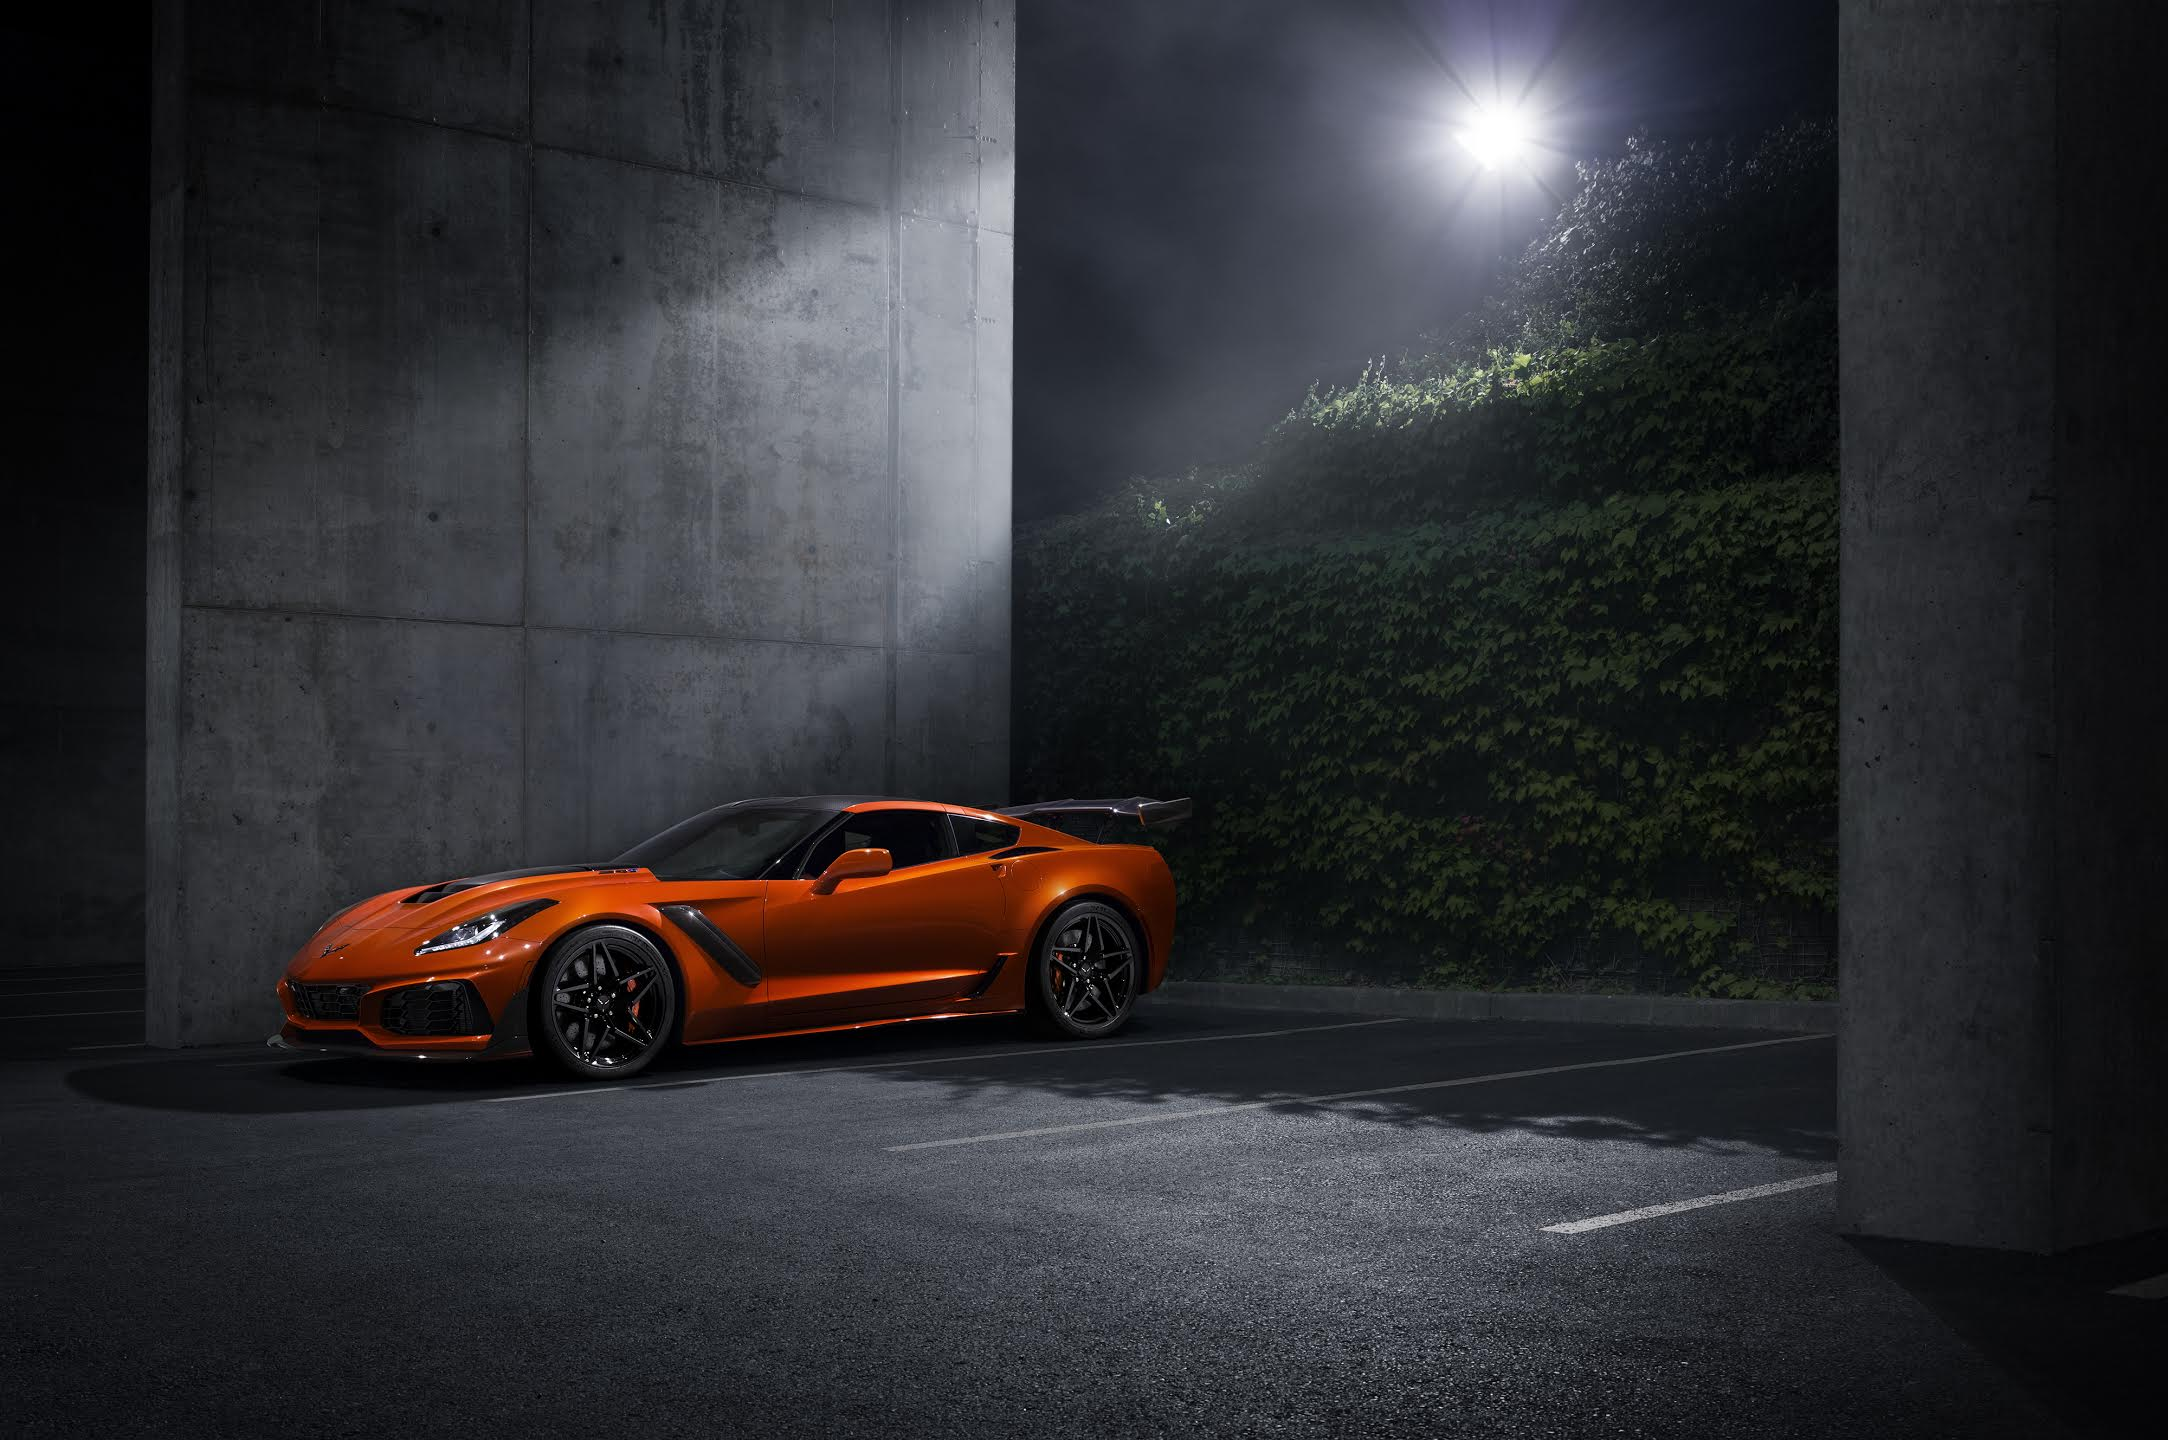 Alex Bernstein photographed the 2019 Corvette ZR1 for Chevrolet